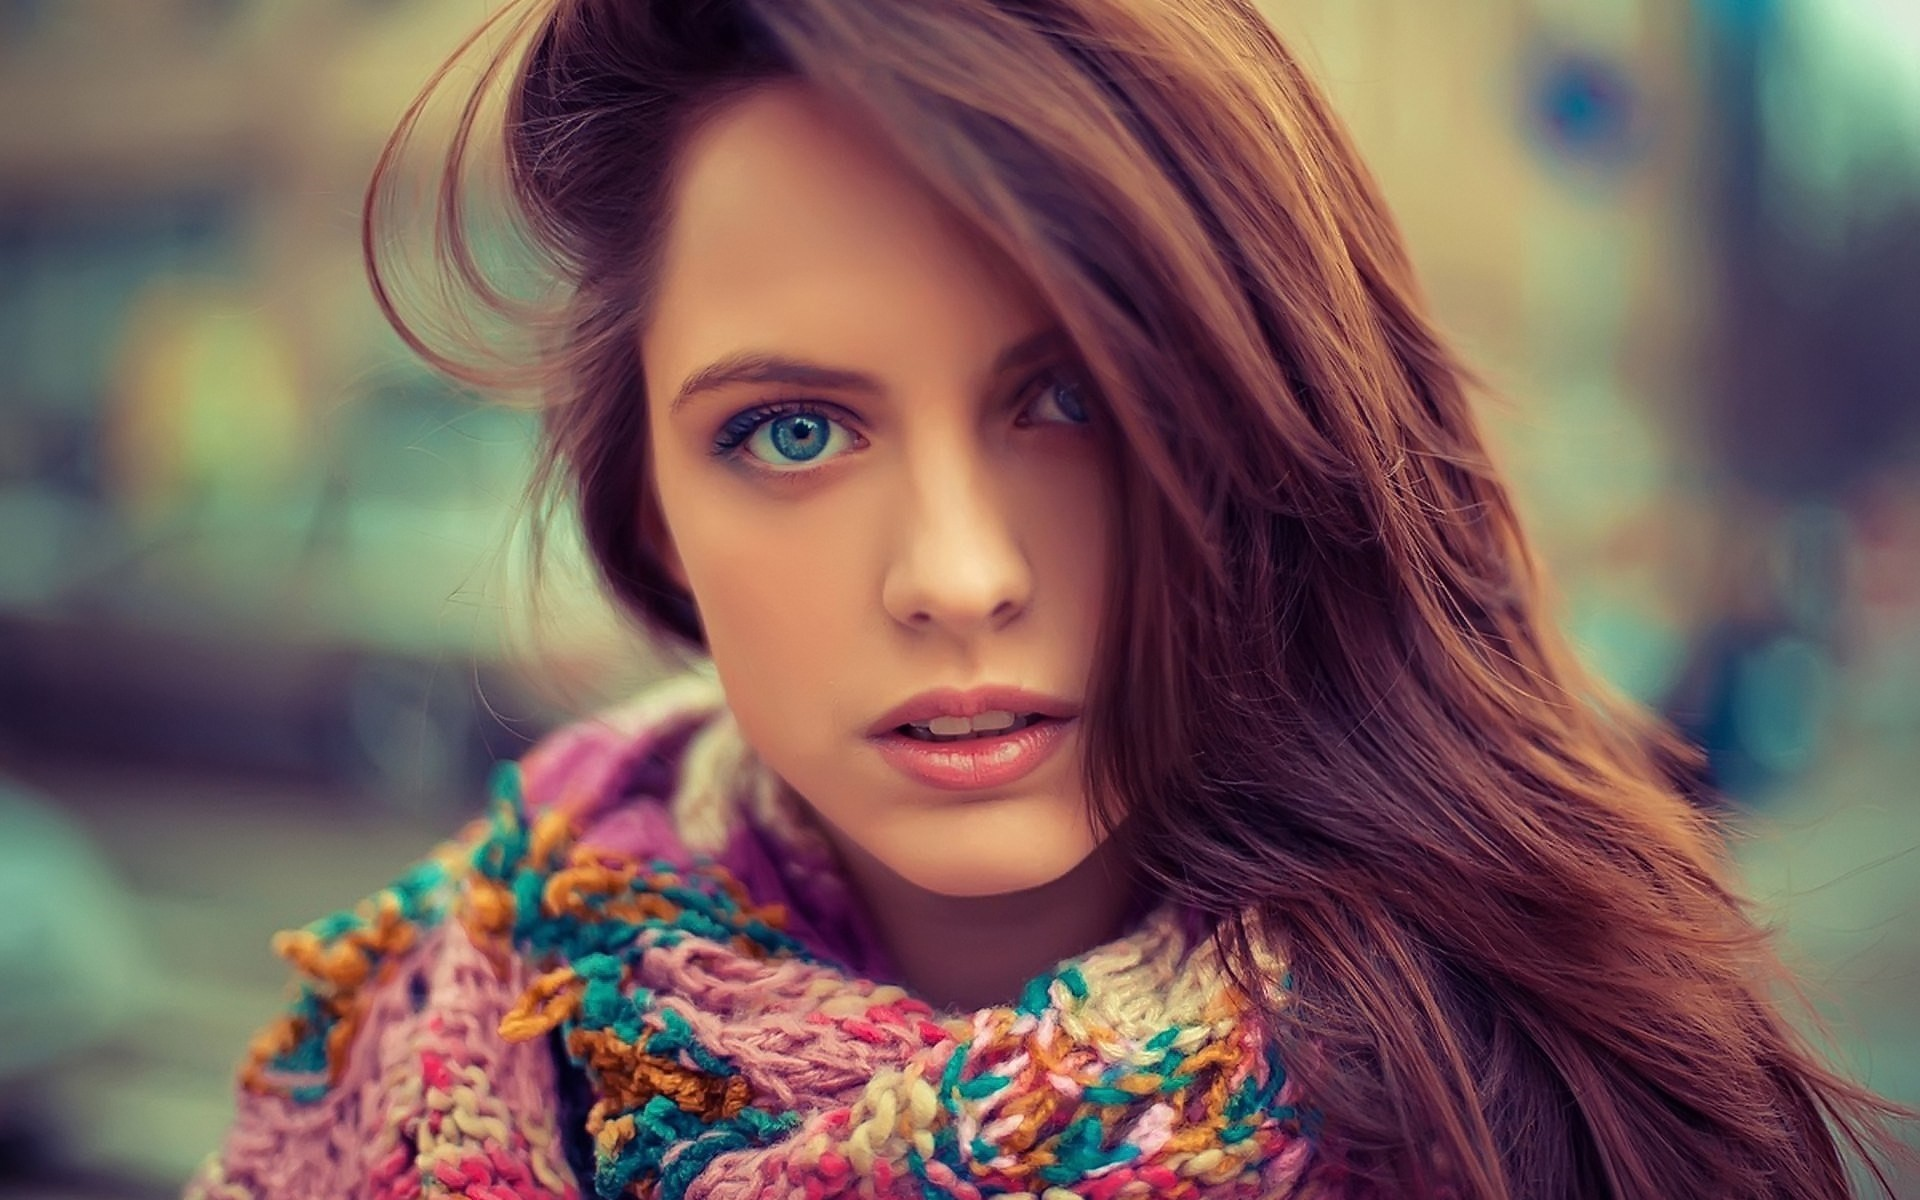 Beautiful Girls Photos Free For Download 1080p